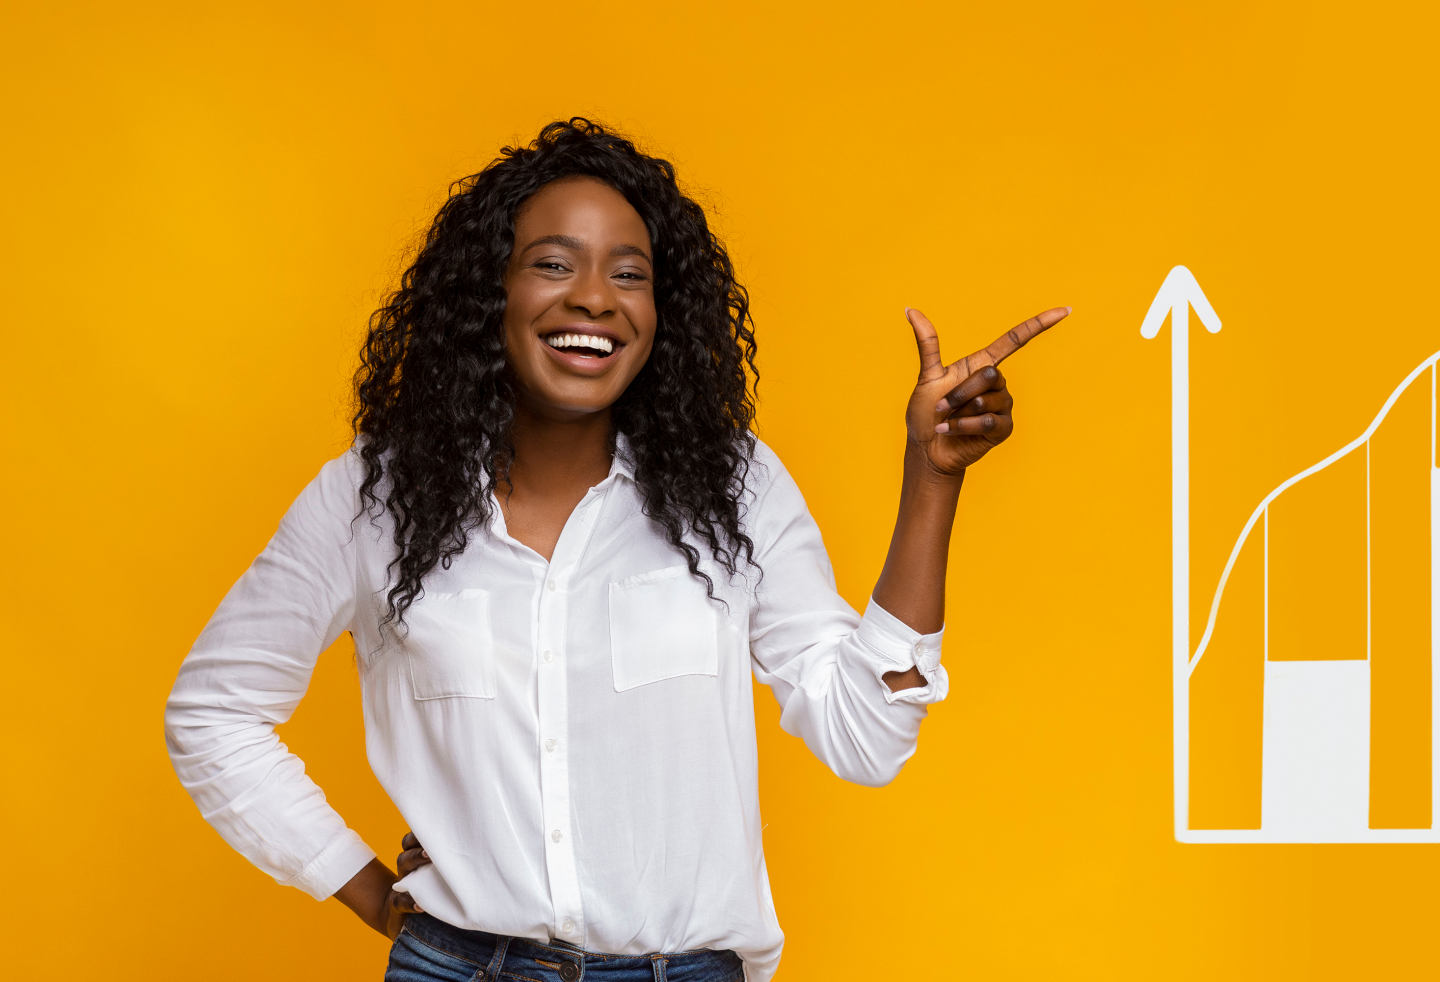 Aligning your Investment goals as a chama